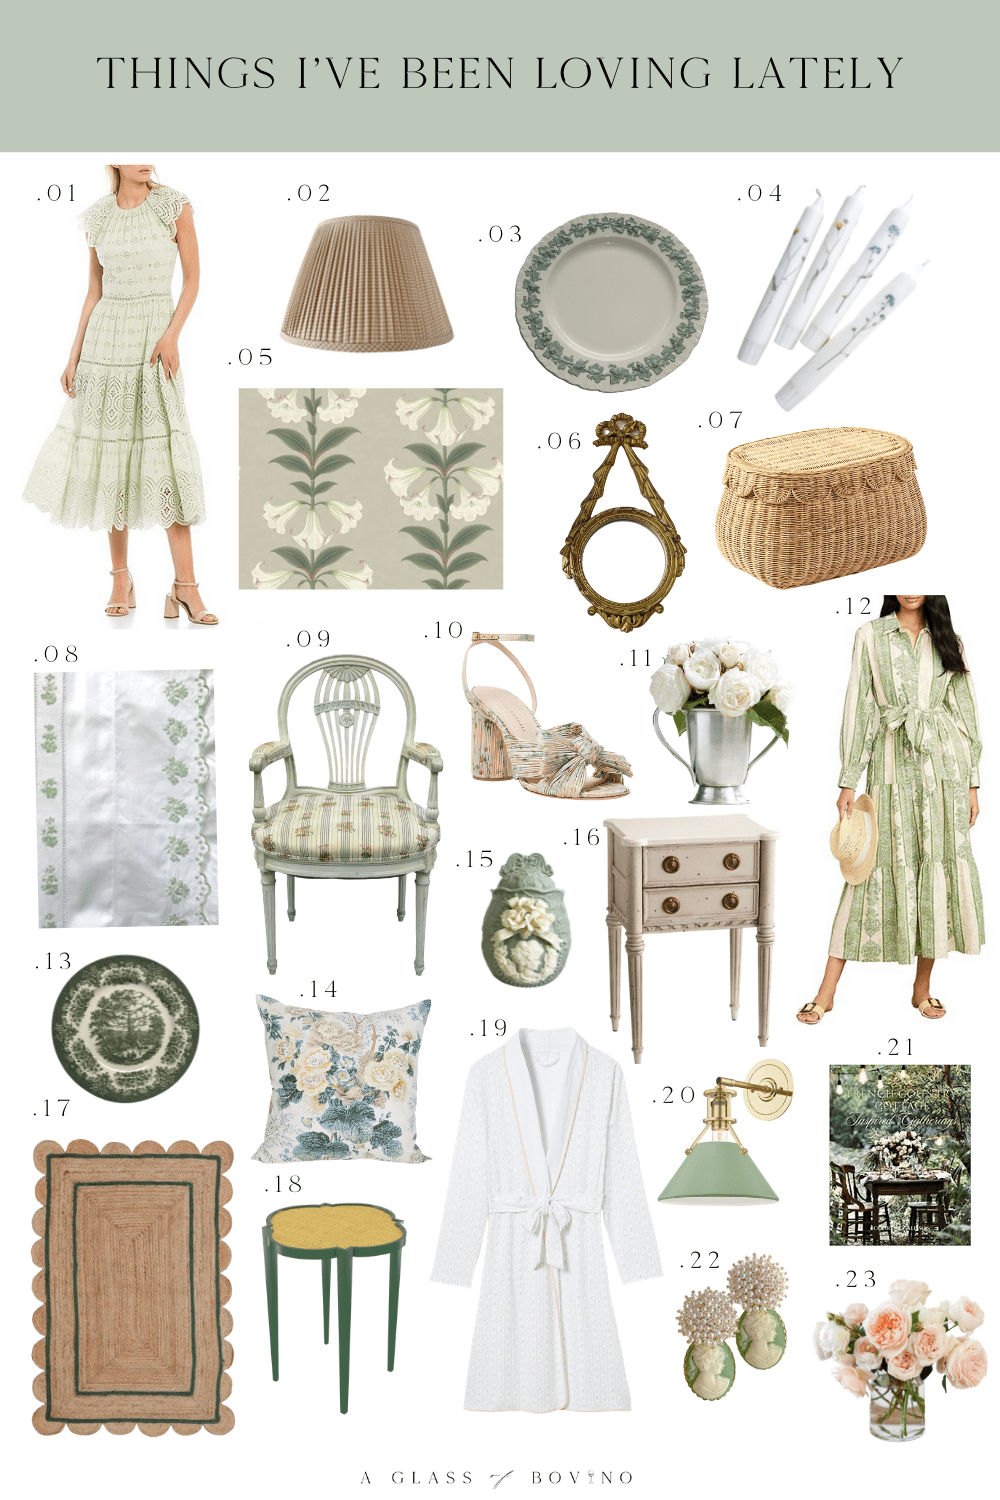 green-mood-board-things-ive-been-loving-lately-interior-design-fashion